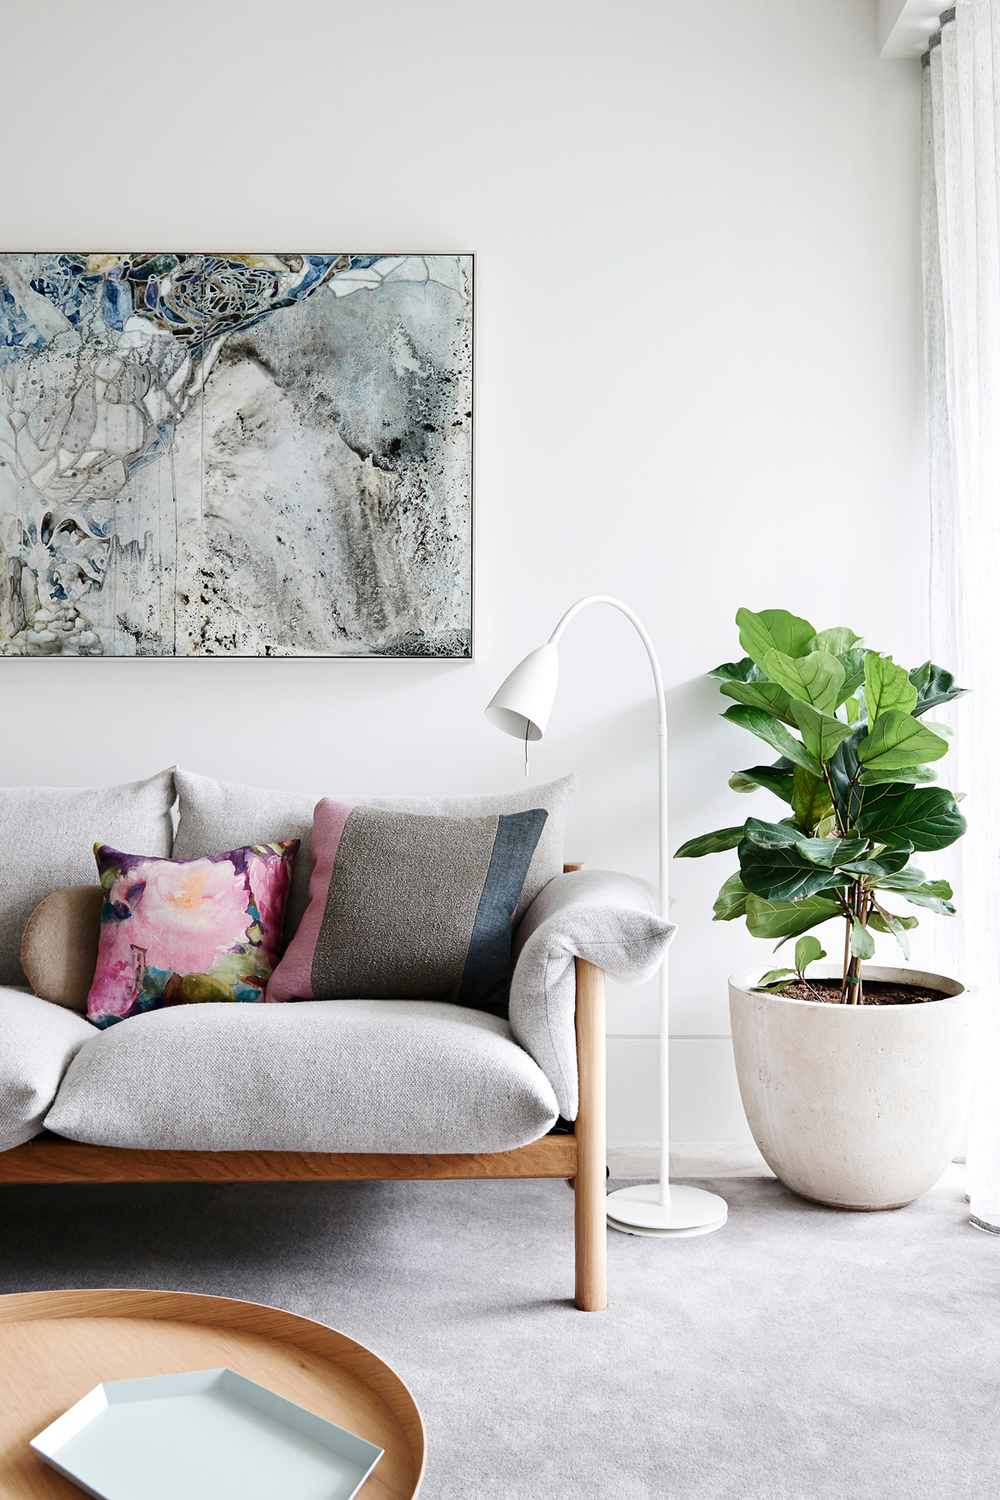 soften a corner with a bold plant. image source voguelivingmagazine.tumblr.com